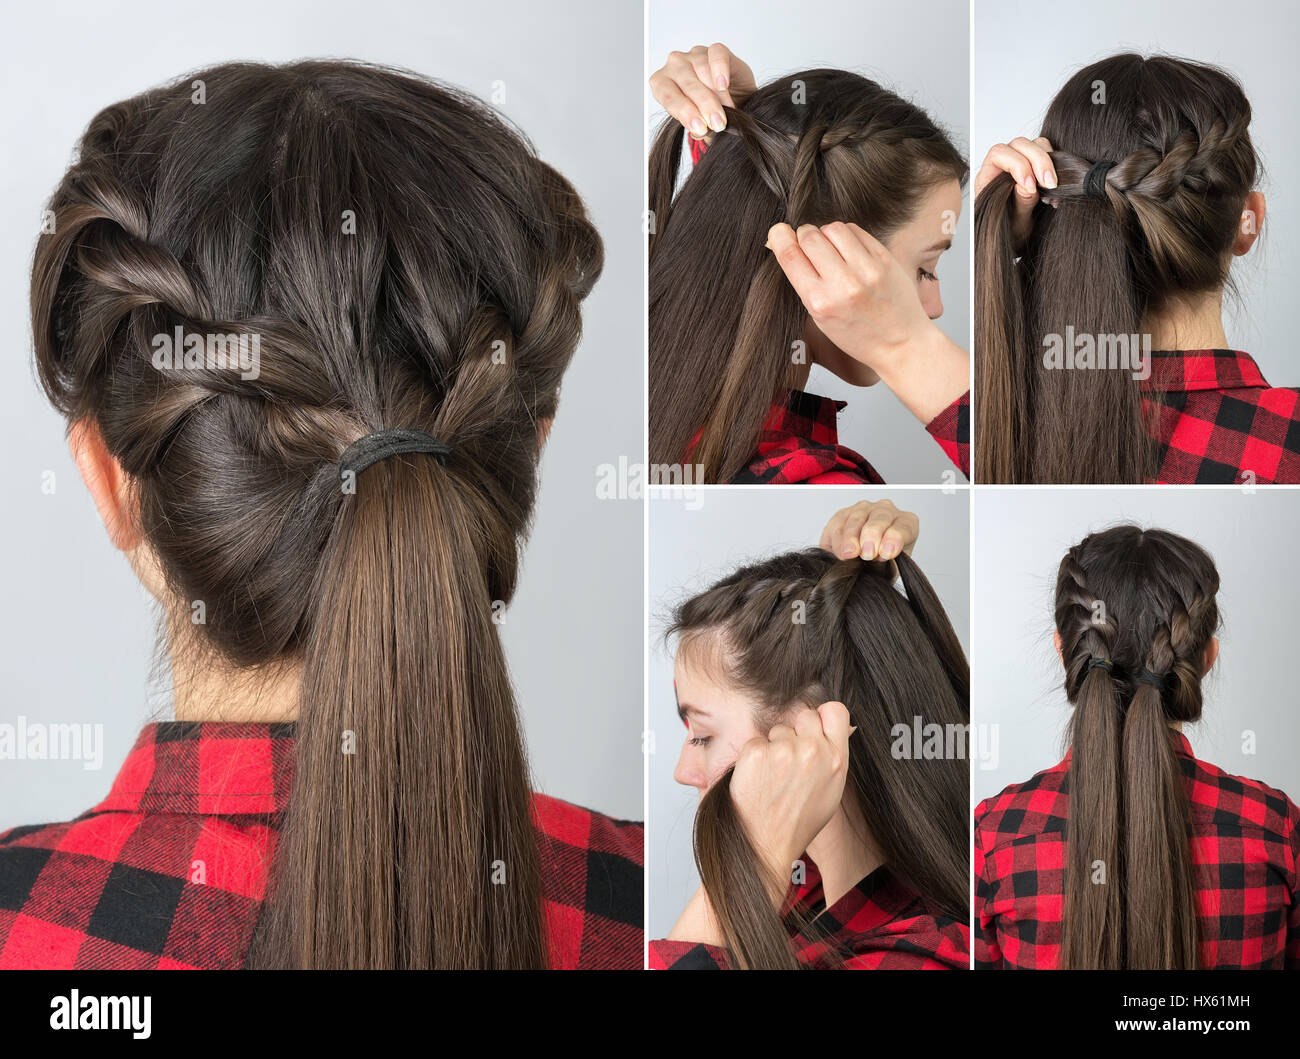 simple twisted hairstyle tutorial step by step. Easy hairstyle for Stock Photo, Royalty Free ...